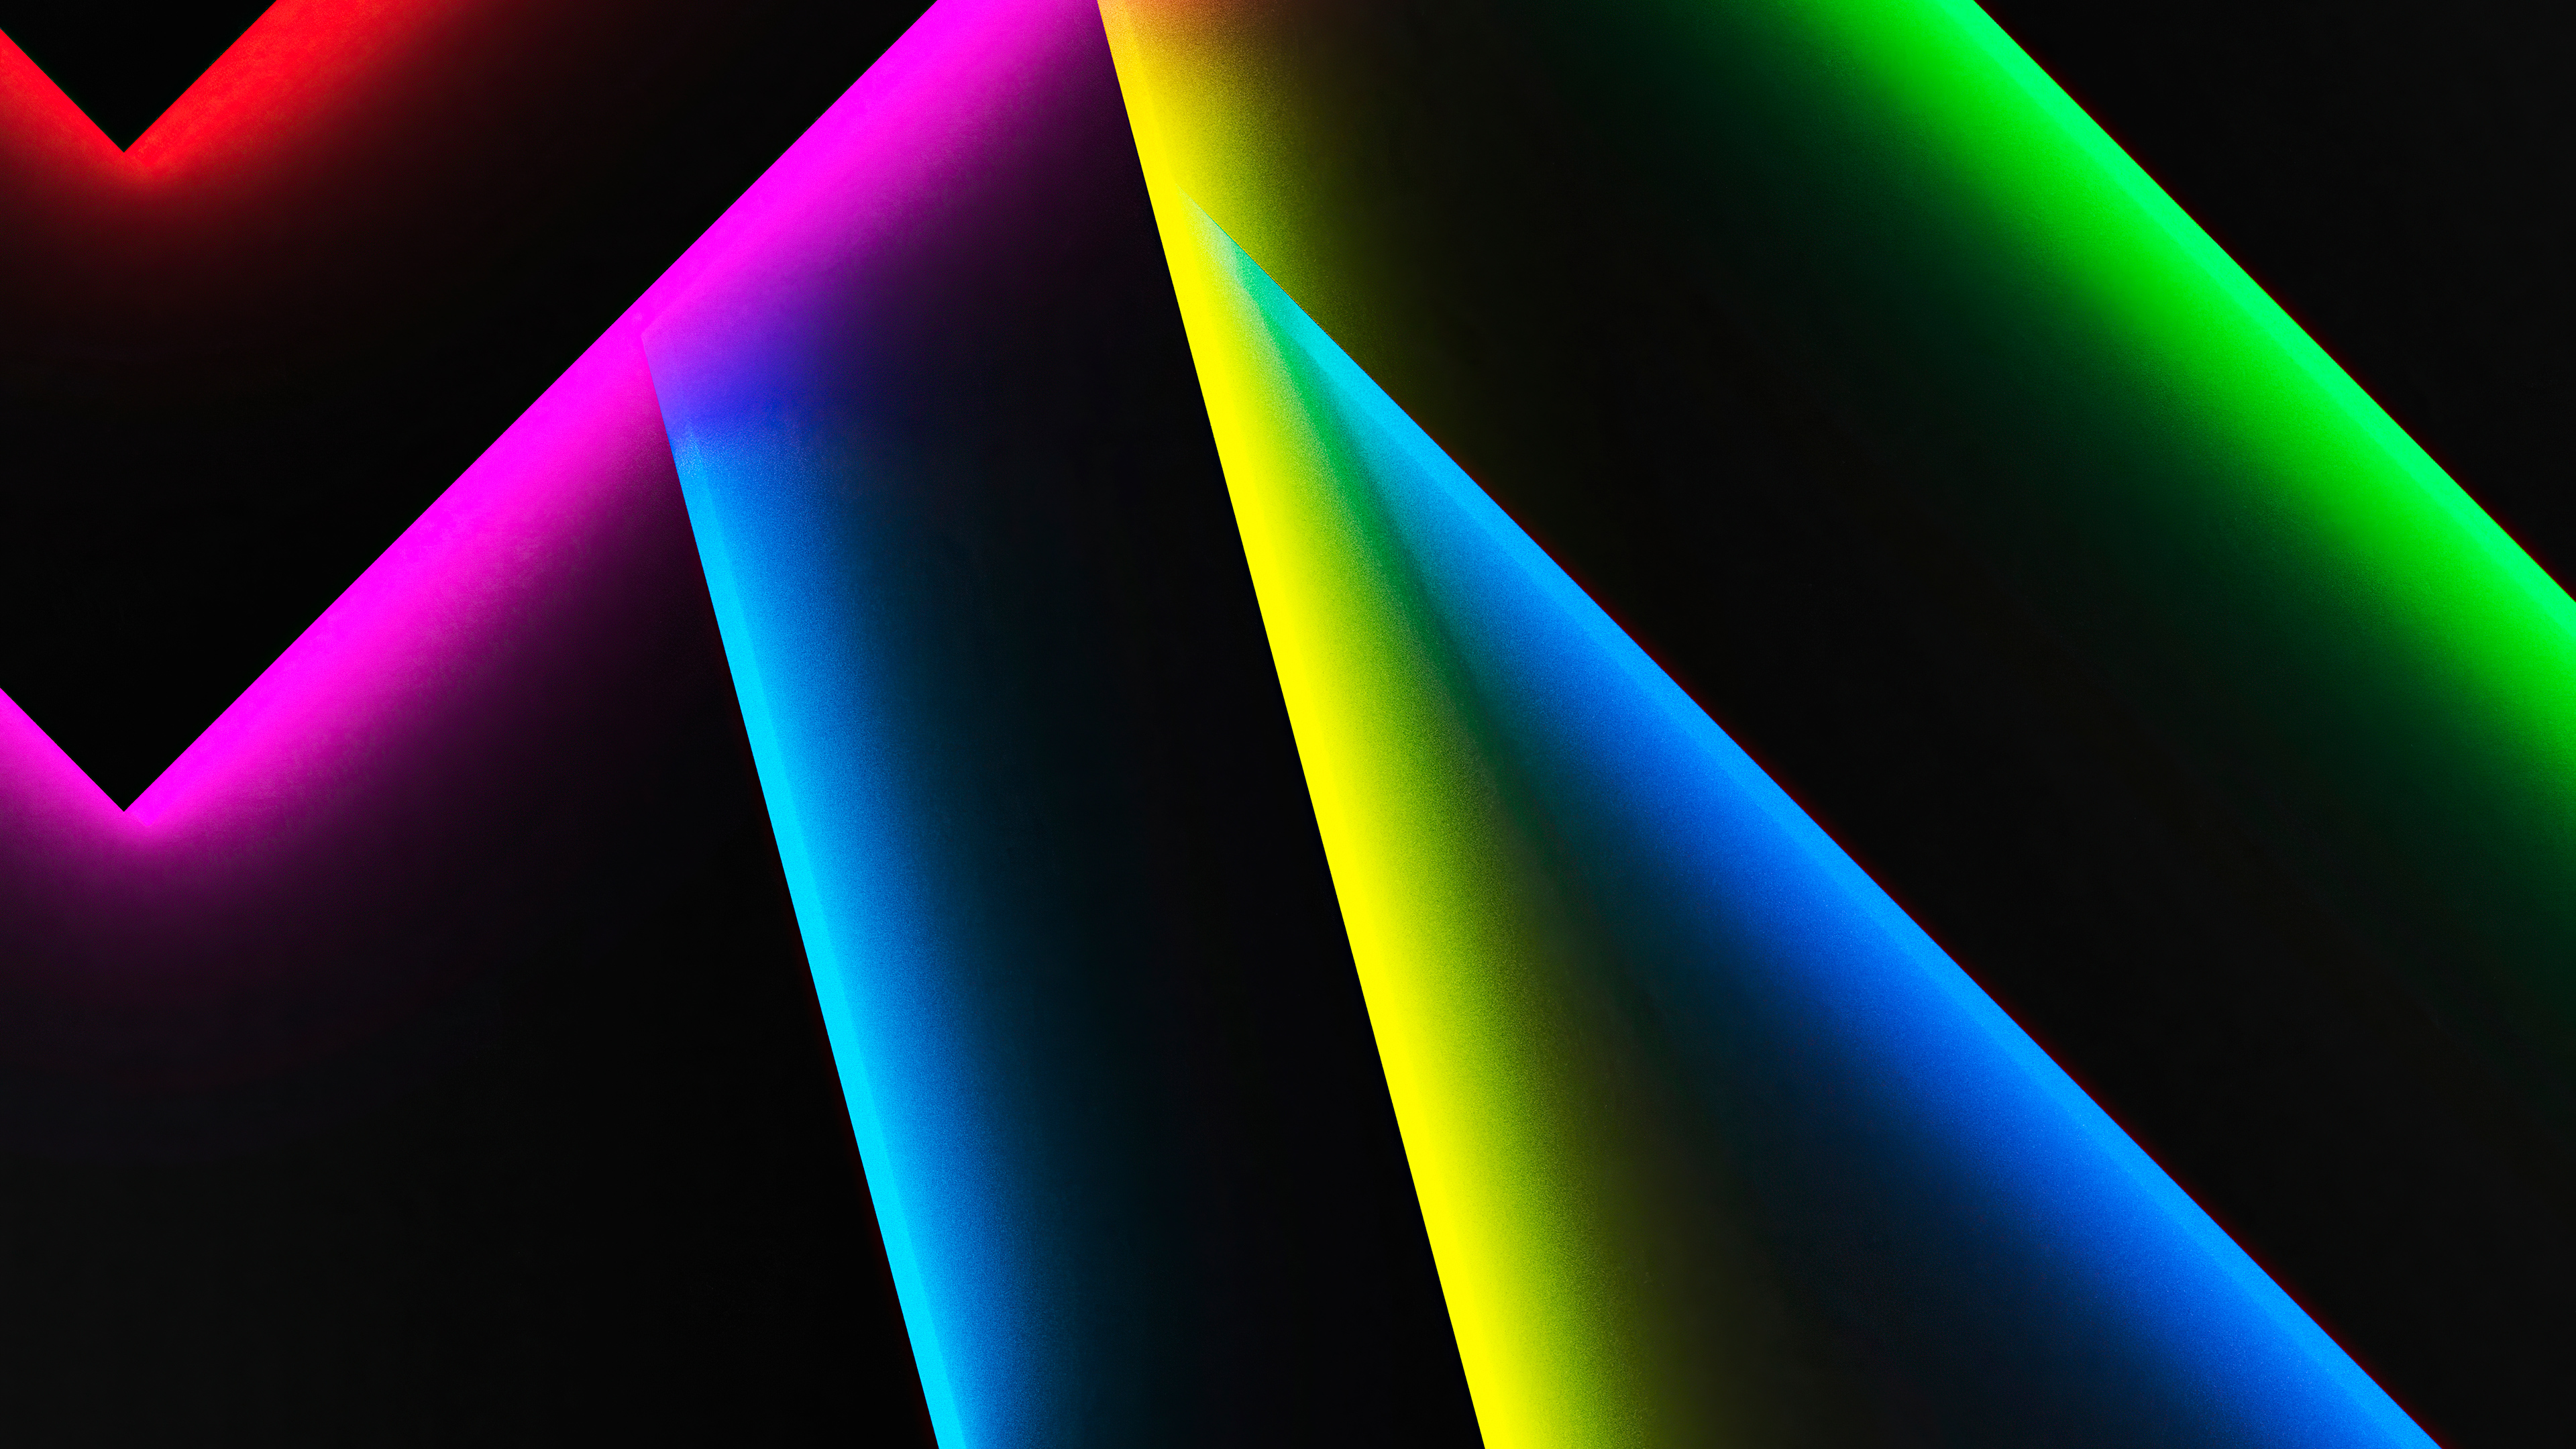 colorful lines shapes shadow 4k 1634163894 - Colorful Lines Shapes Shadow 4k - Colorful Lines Shapes Shadow wallpapers, Colorful Lines Shapes Shadow 4k wallpapers